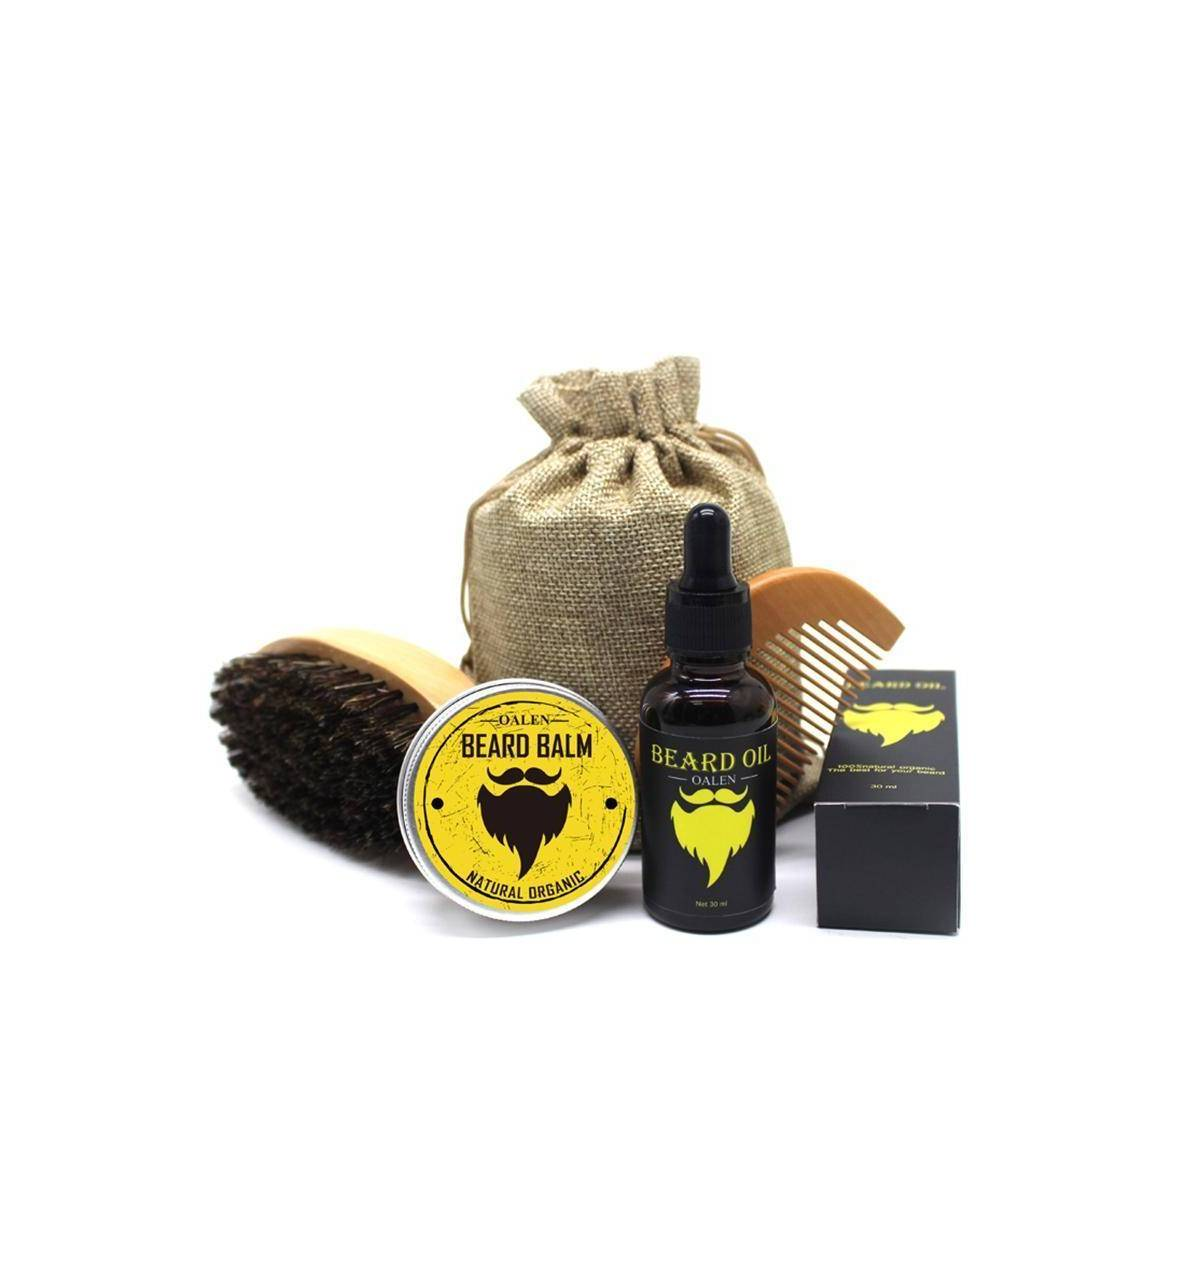 kit soin barbe 5 pi ces huile baume peigne brosse sacoche bismillah boutique. Black Bedroom Furniture Sets. Home Design Ideas